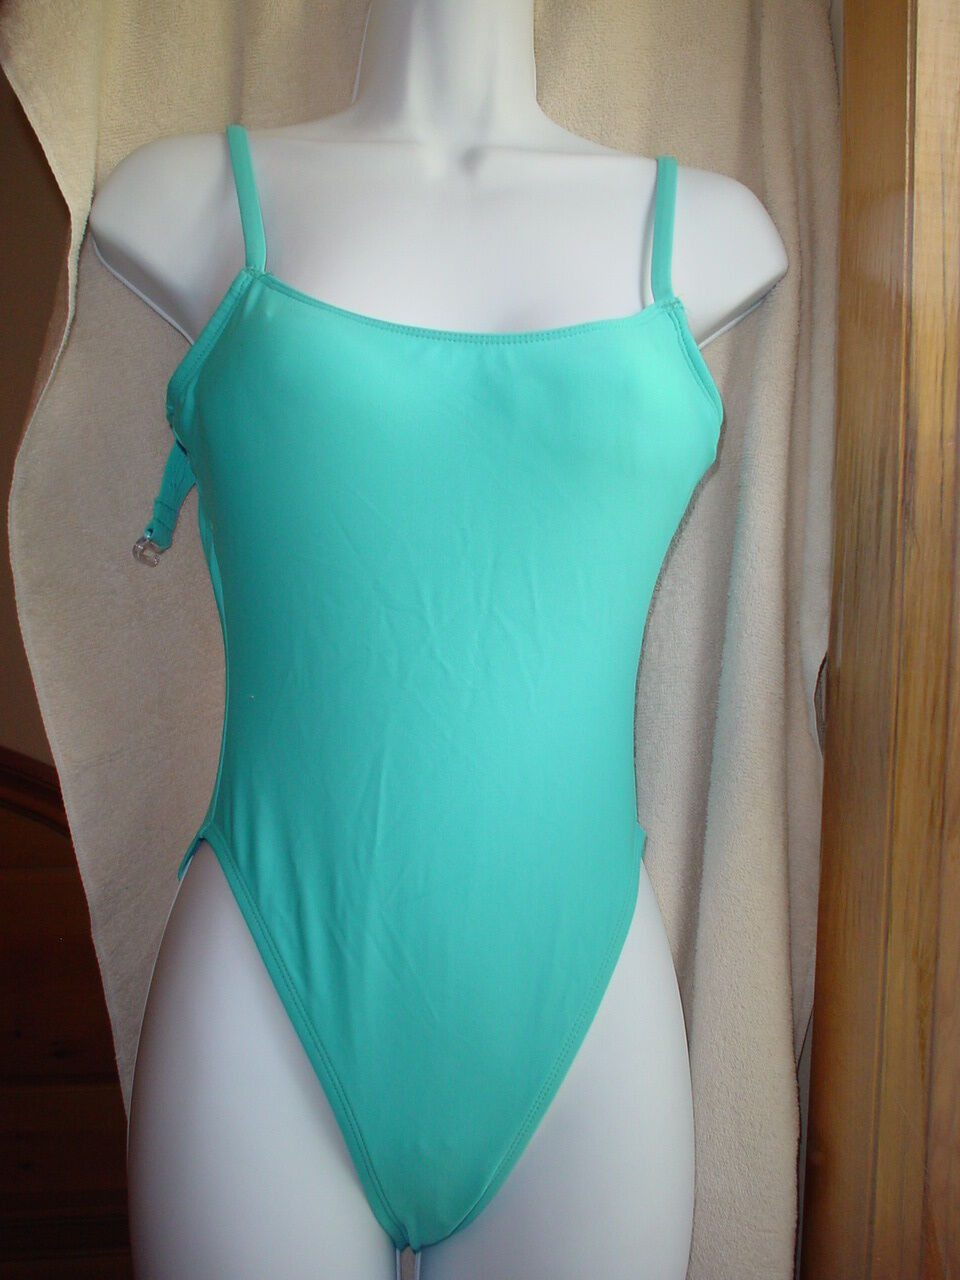 Victorias Secret Miracle One Piece 32A bluee NWOT